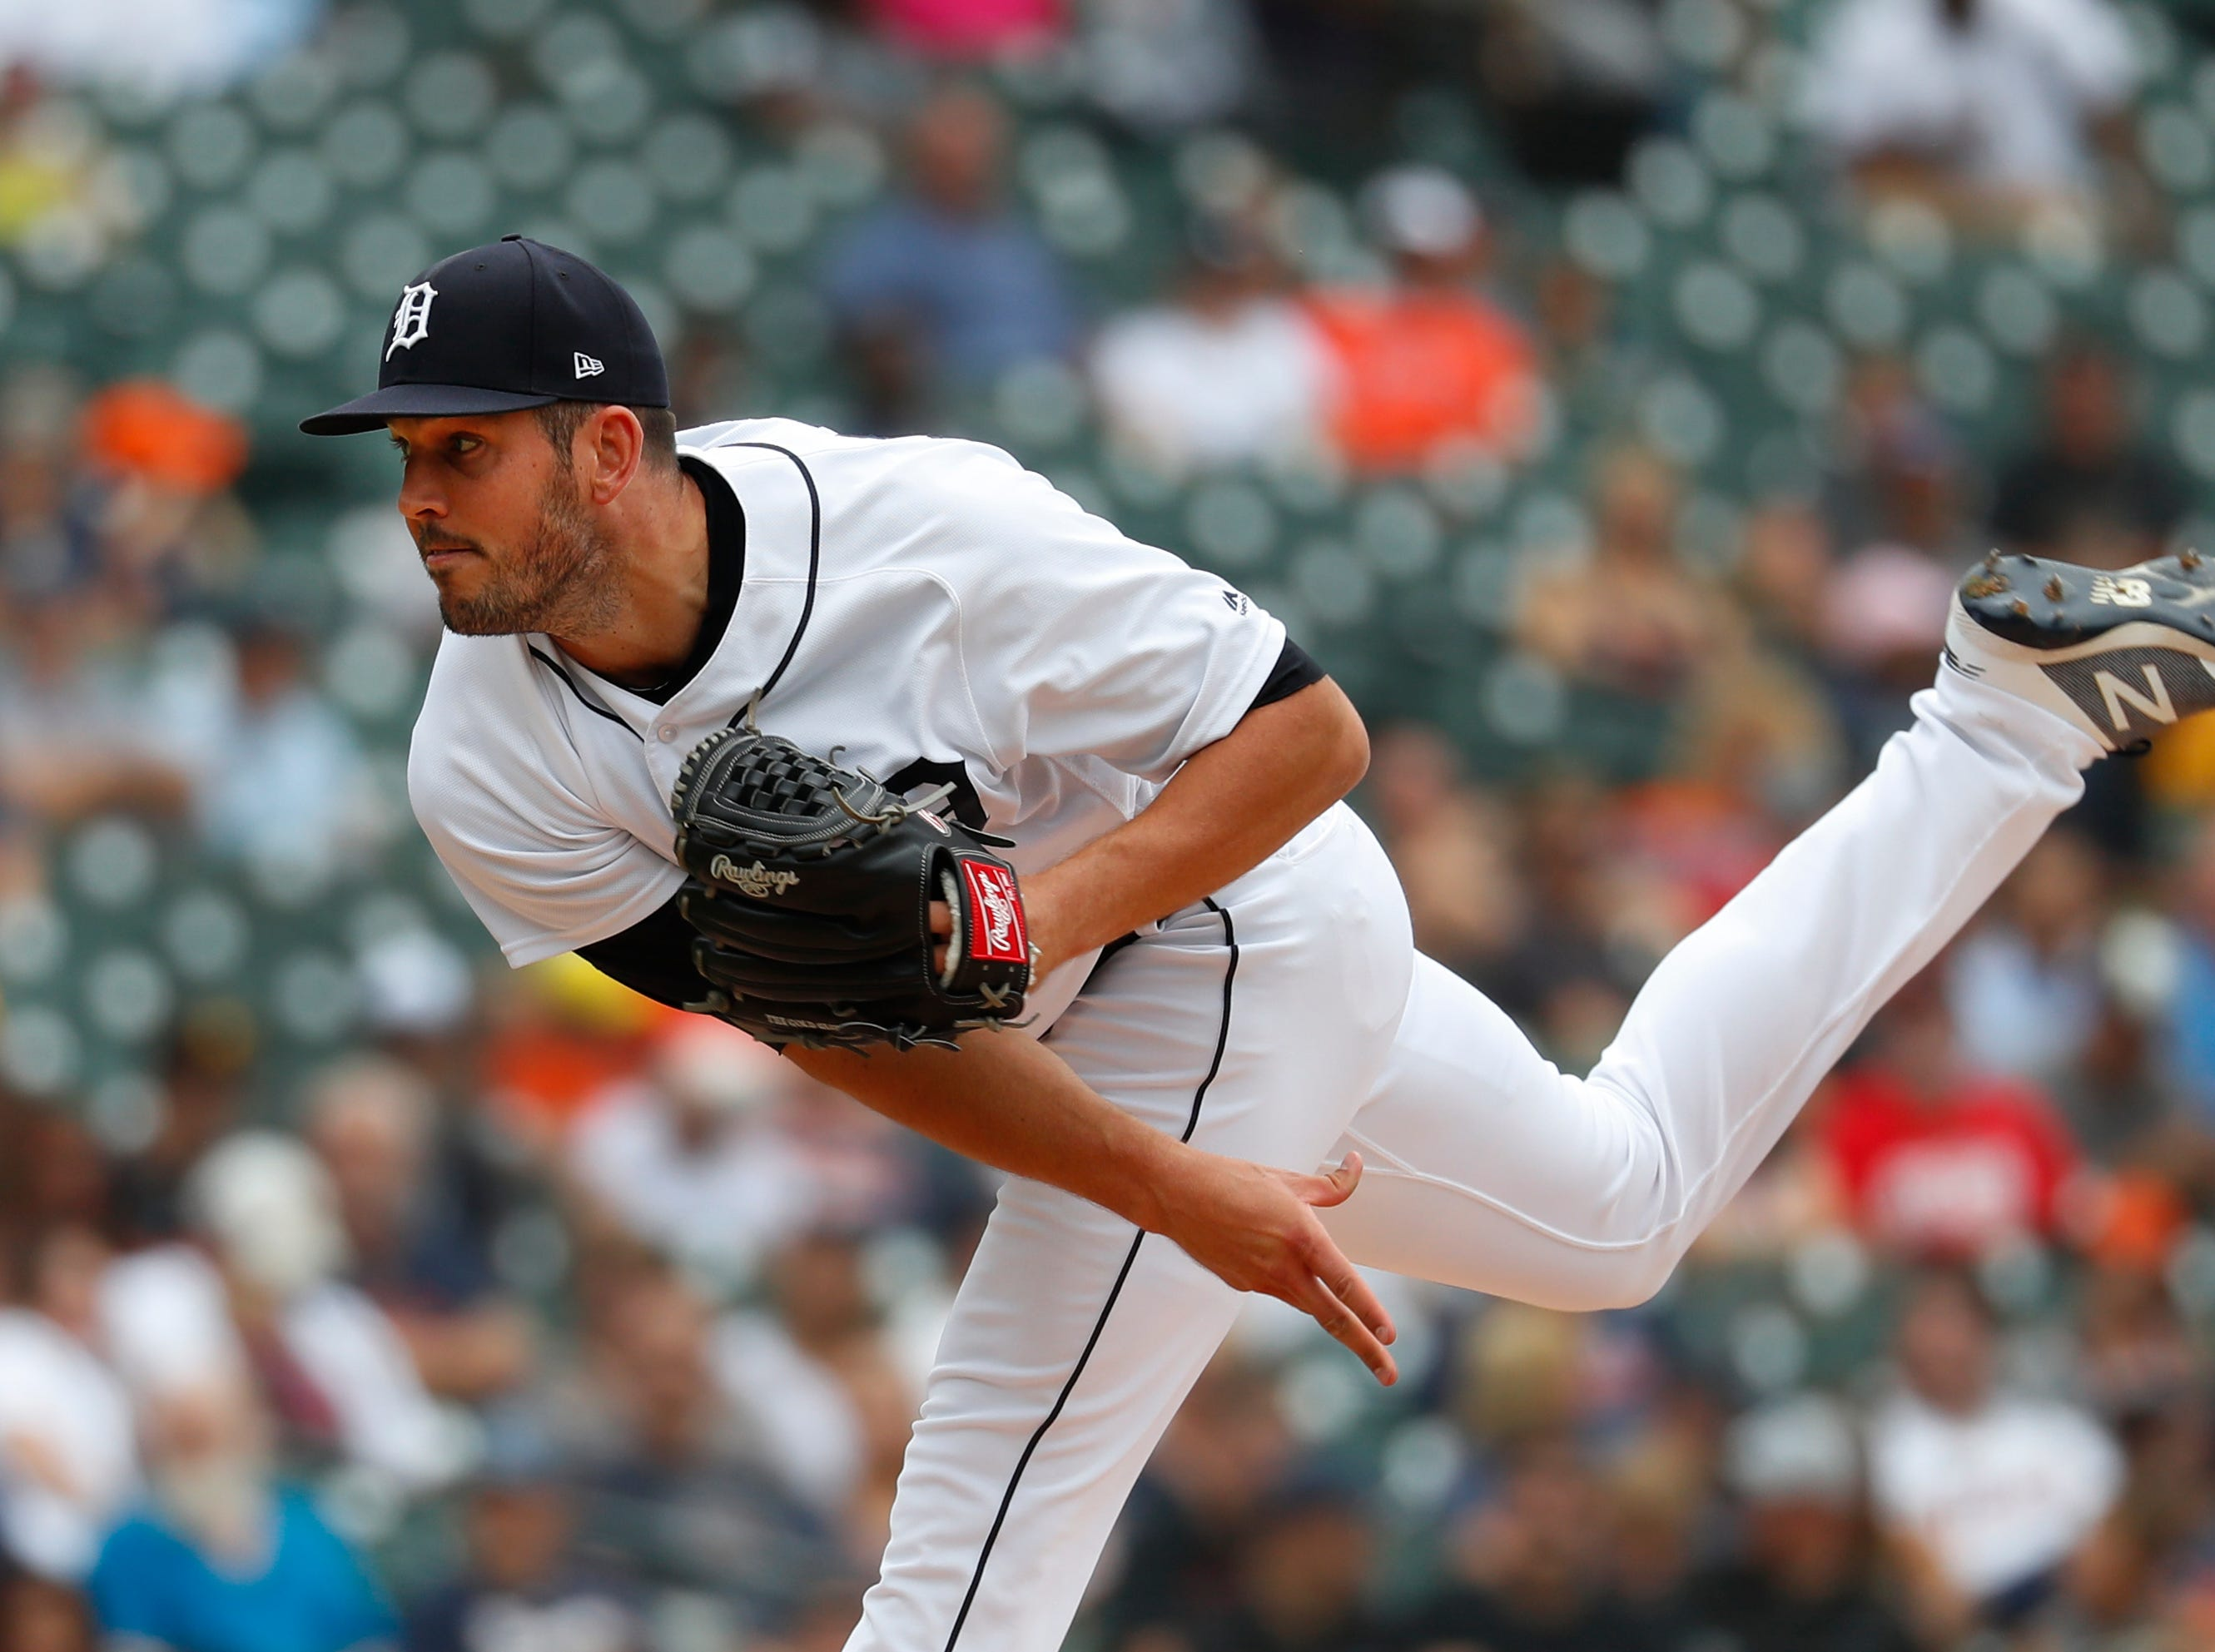 Tigers reliever Drew VerHagen throws in the fourth inning.